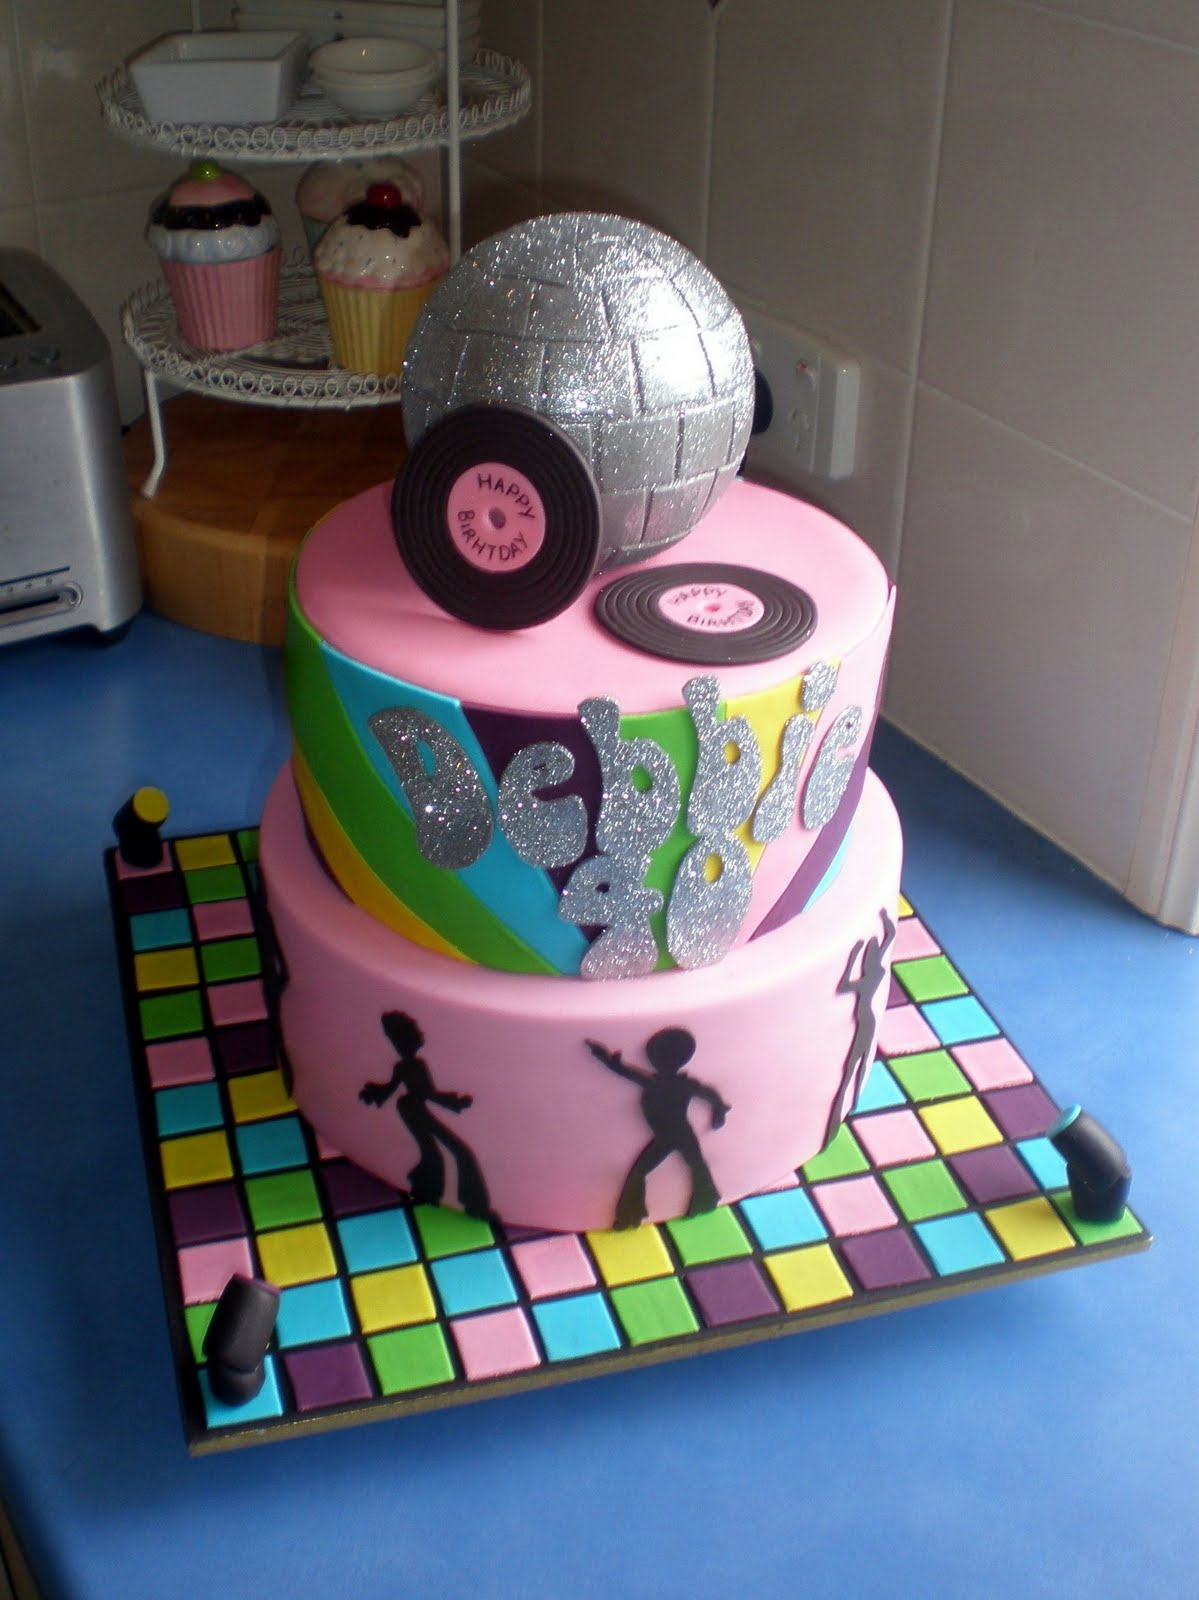 Sugar siren cakes mackay 70 39 s disco cake for 80s cake decoration ideas